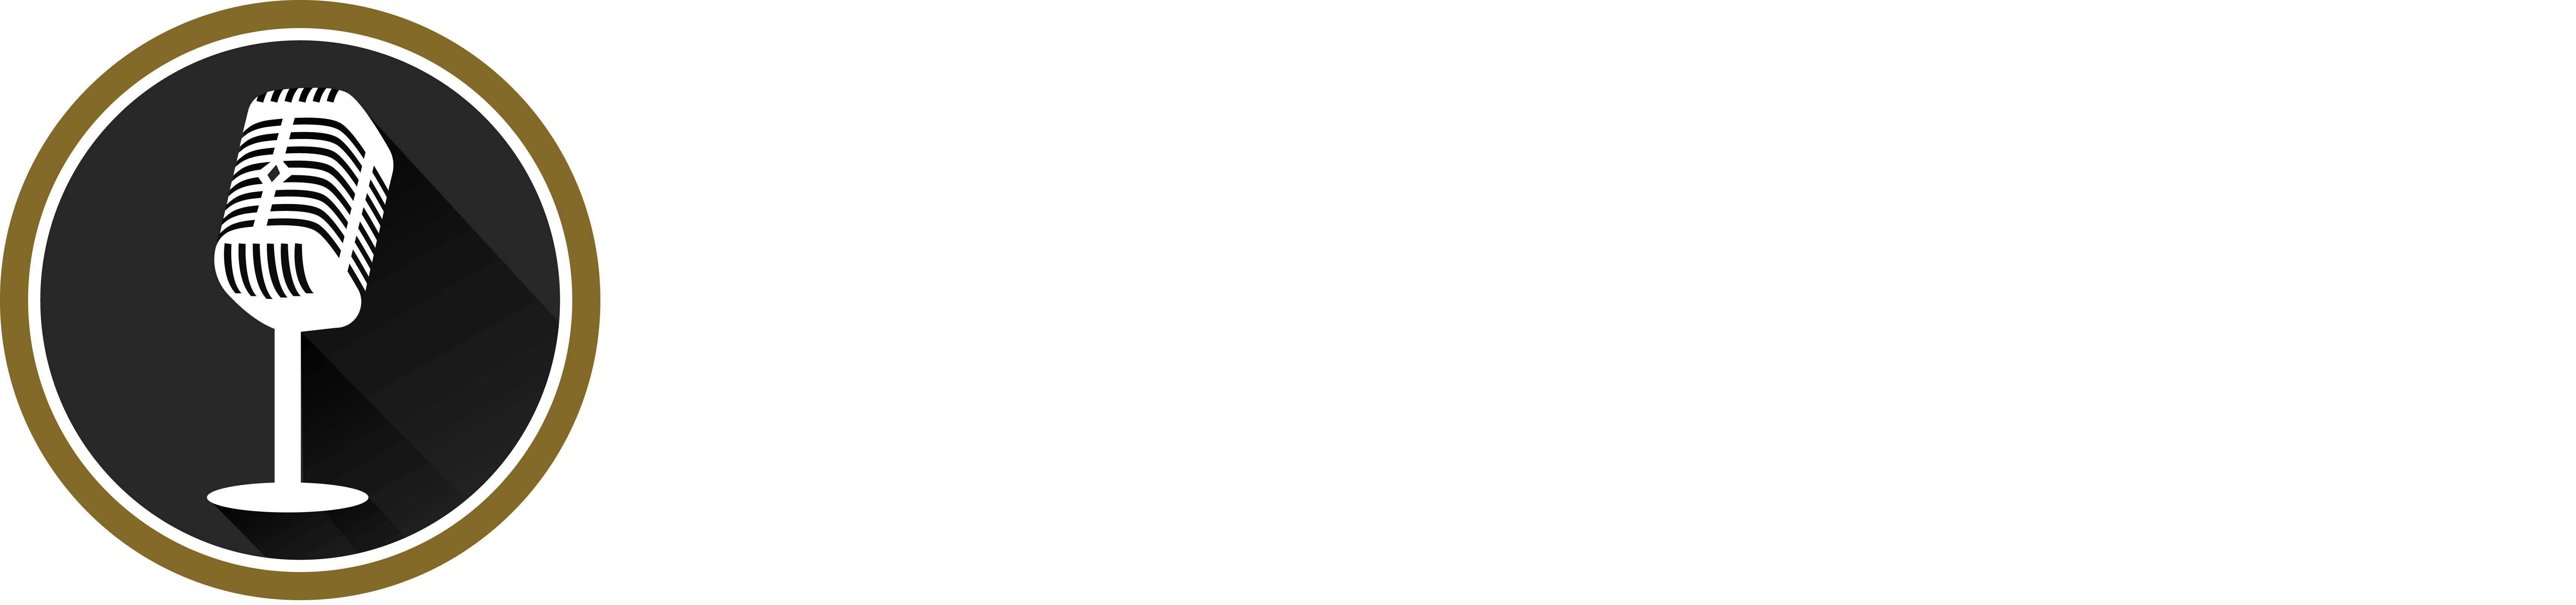 Art Grand Pictures